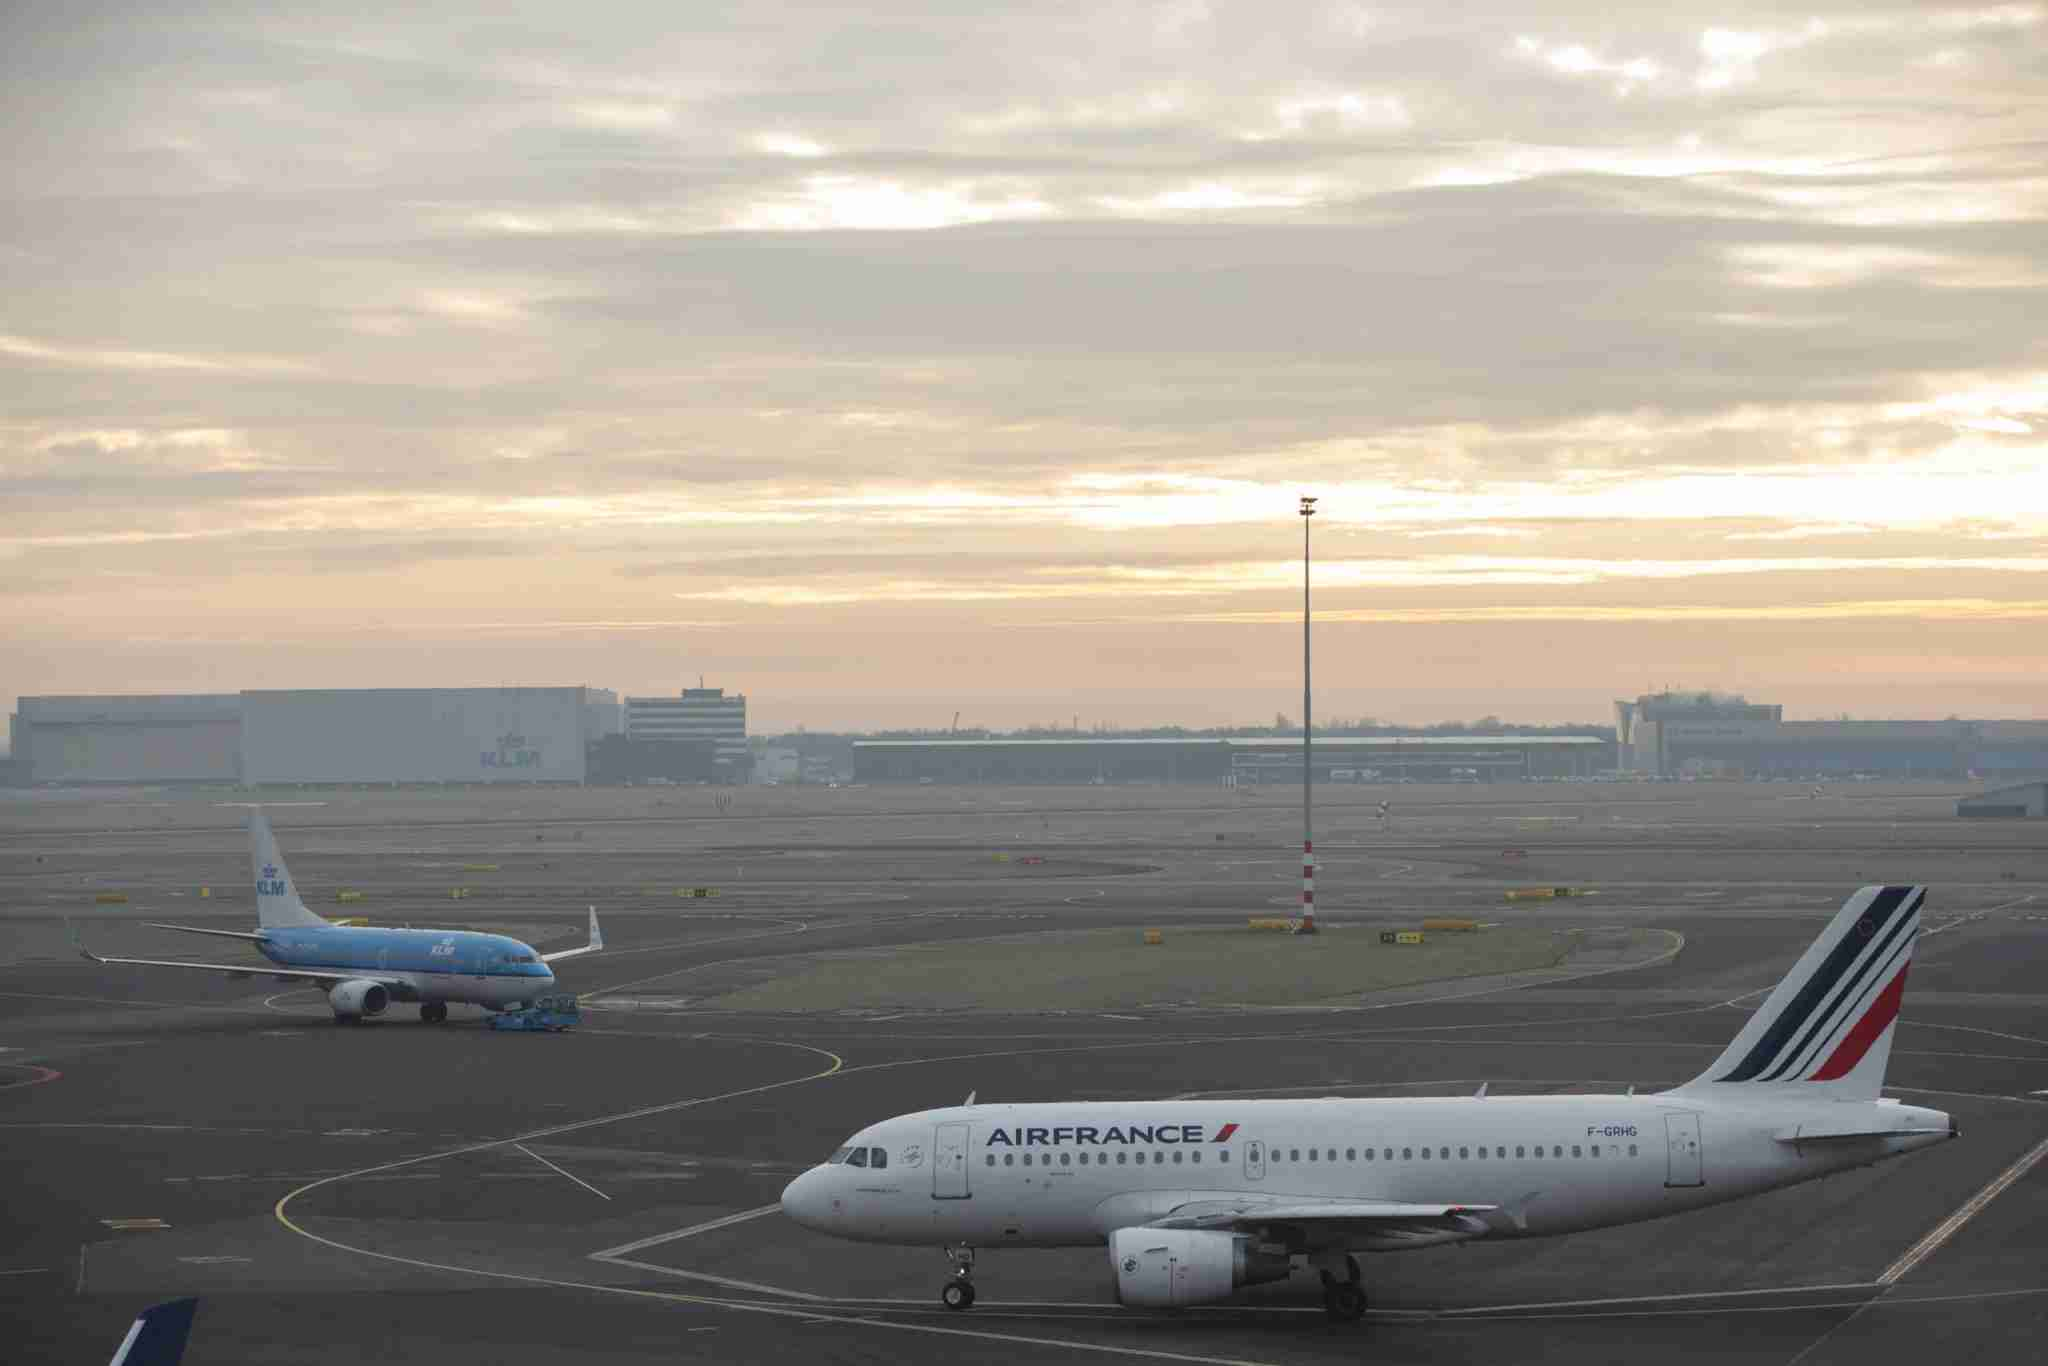 Passenger aircraft operated by Air France-KLM Group, right, and a KLM jet sit on the tarmac at Schiphol Airport, operated by the Schiphol Group, in Amsterdam, Netherlands, on Tuesday, Jan. 19, 2016. Air France-KLM Group, ranked as Europe